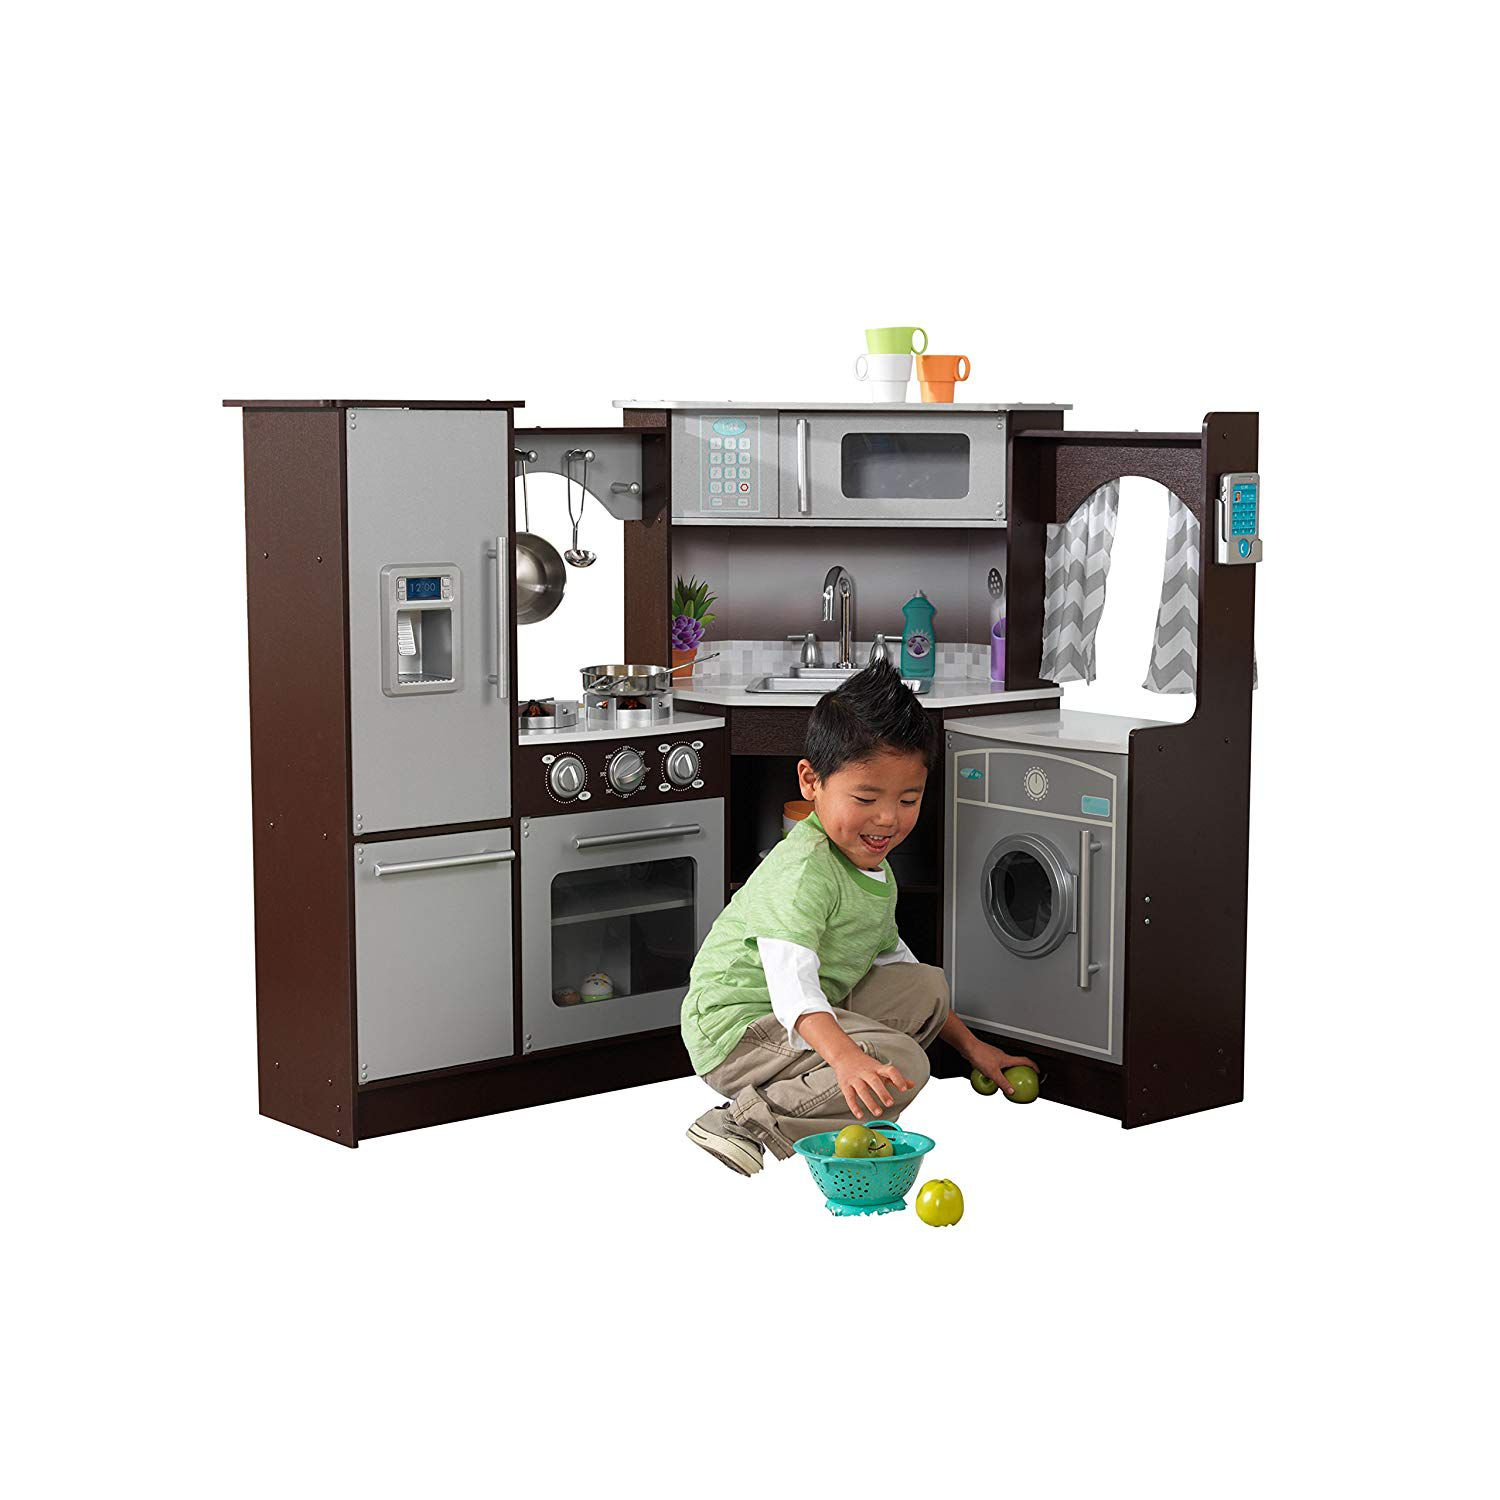 The 10 Best Kitchen Sets for Kids in 2019